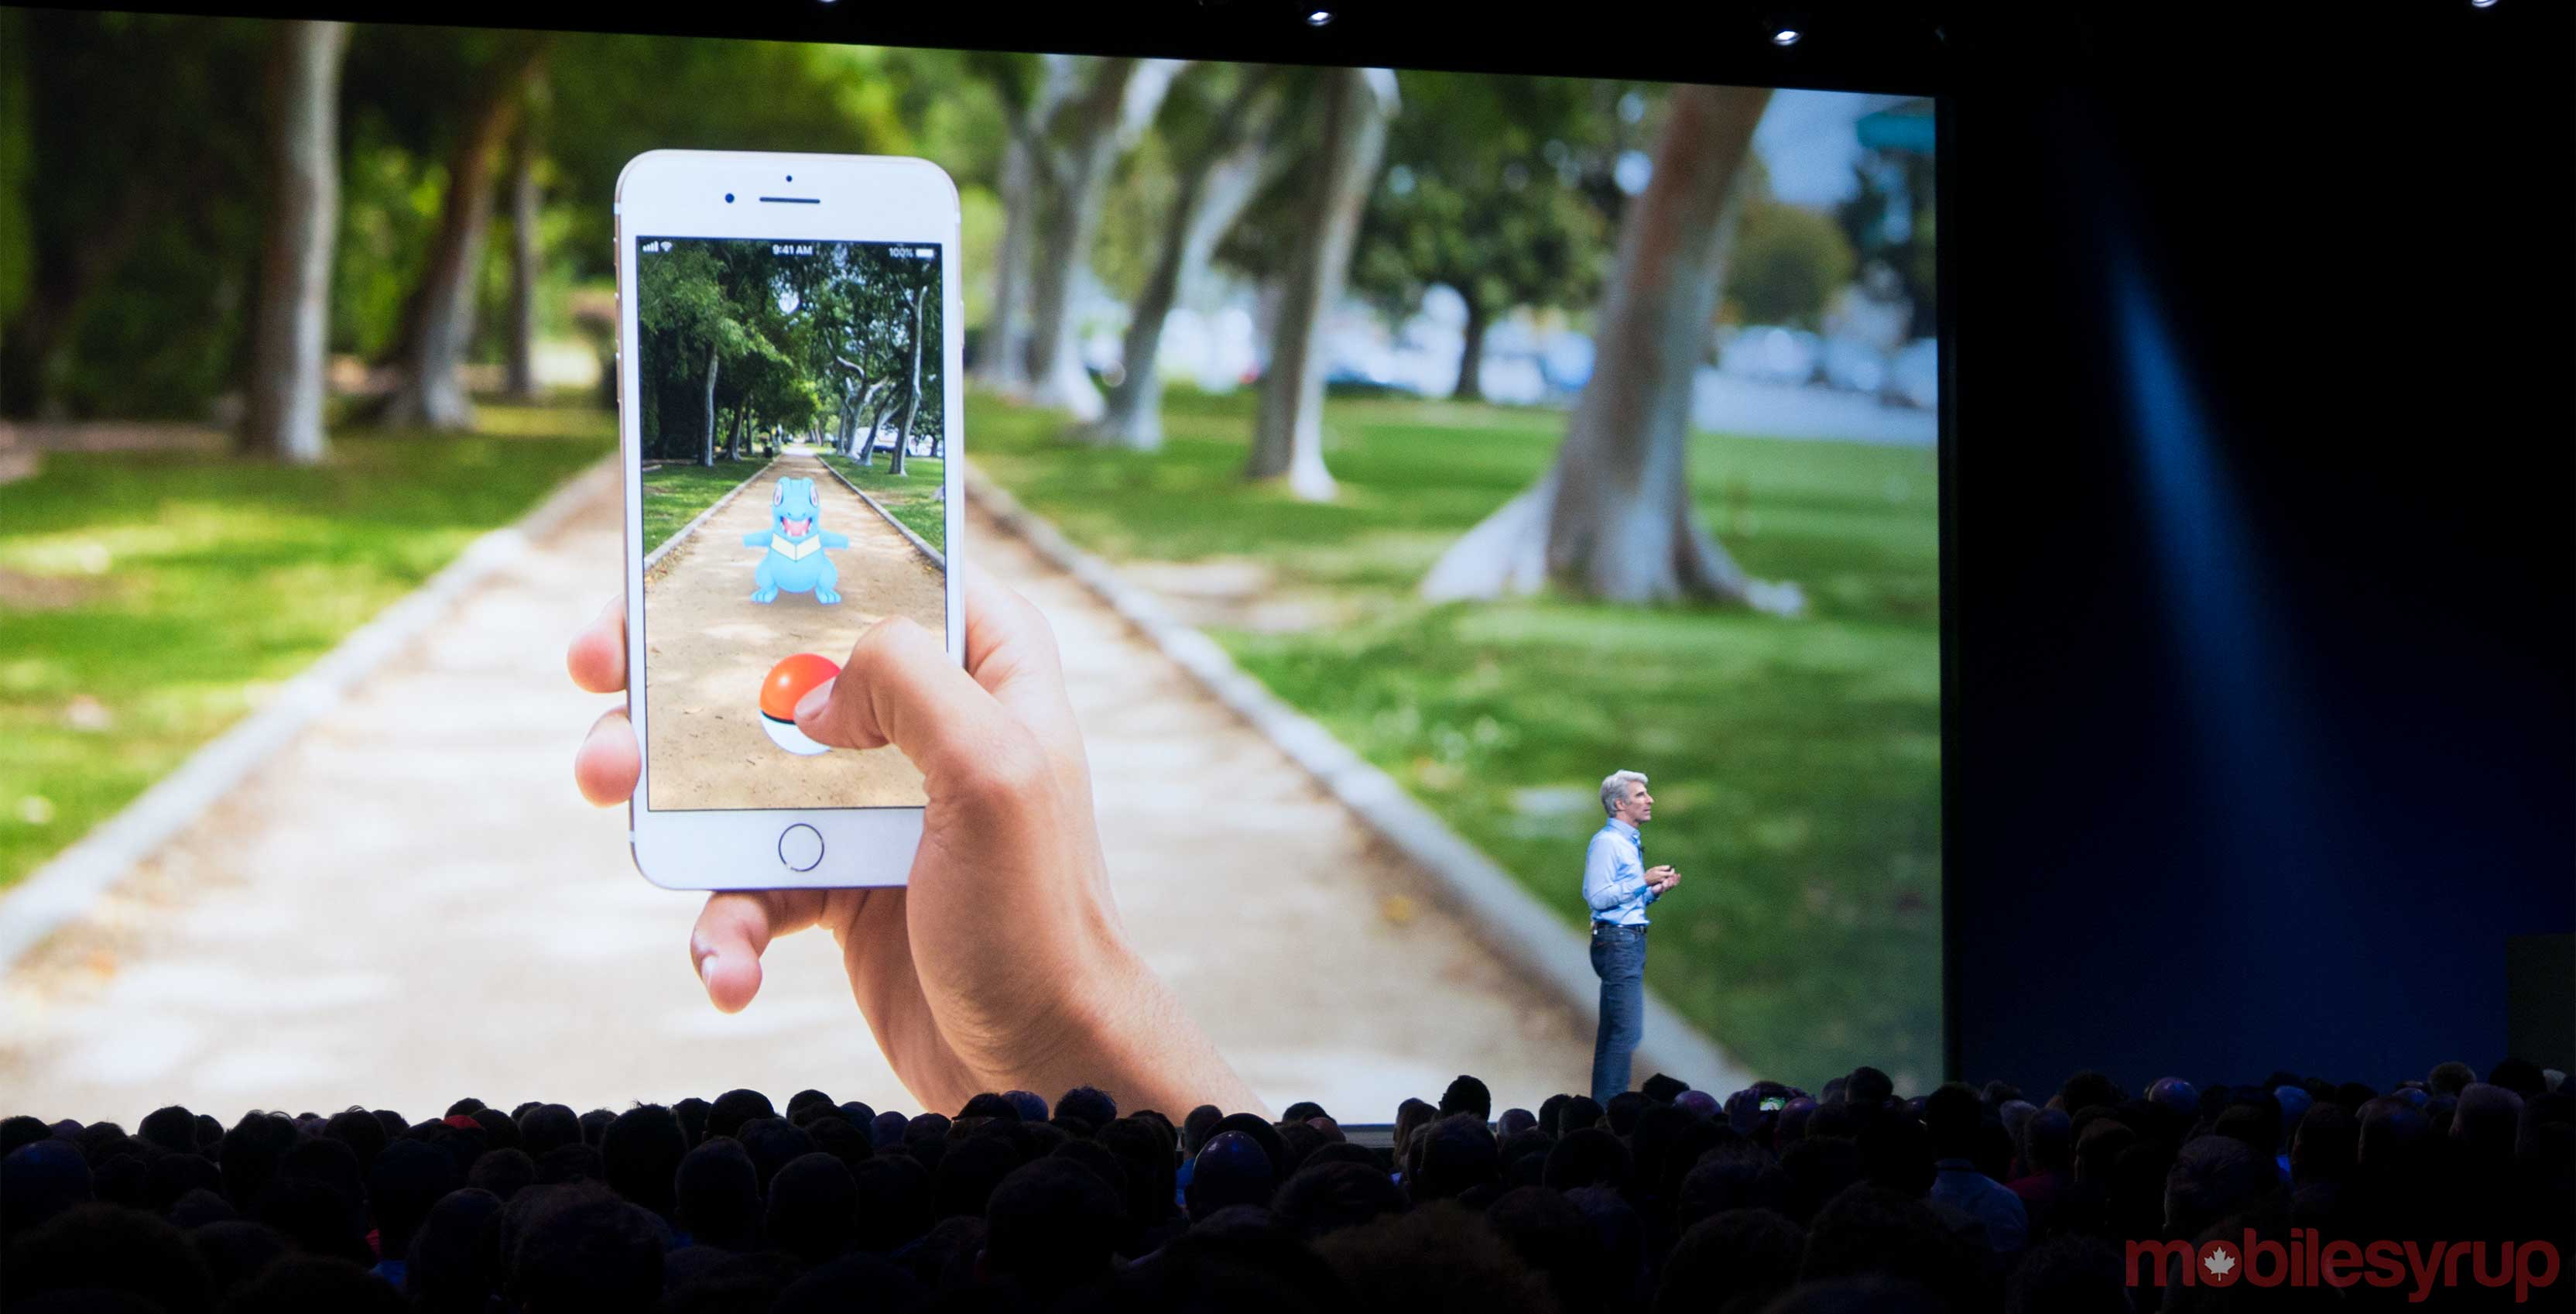 Pokemon GO taking advantage of Apple's new ARKit